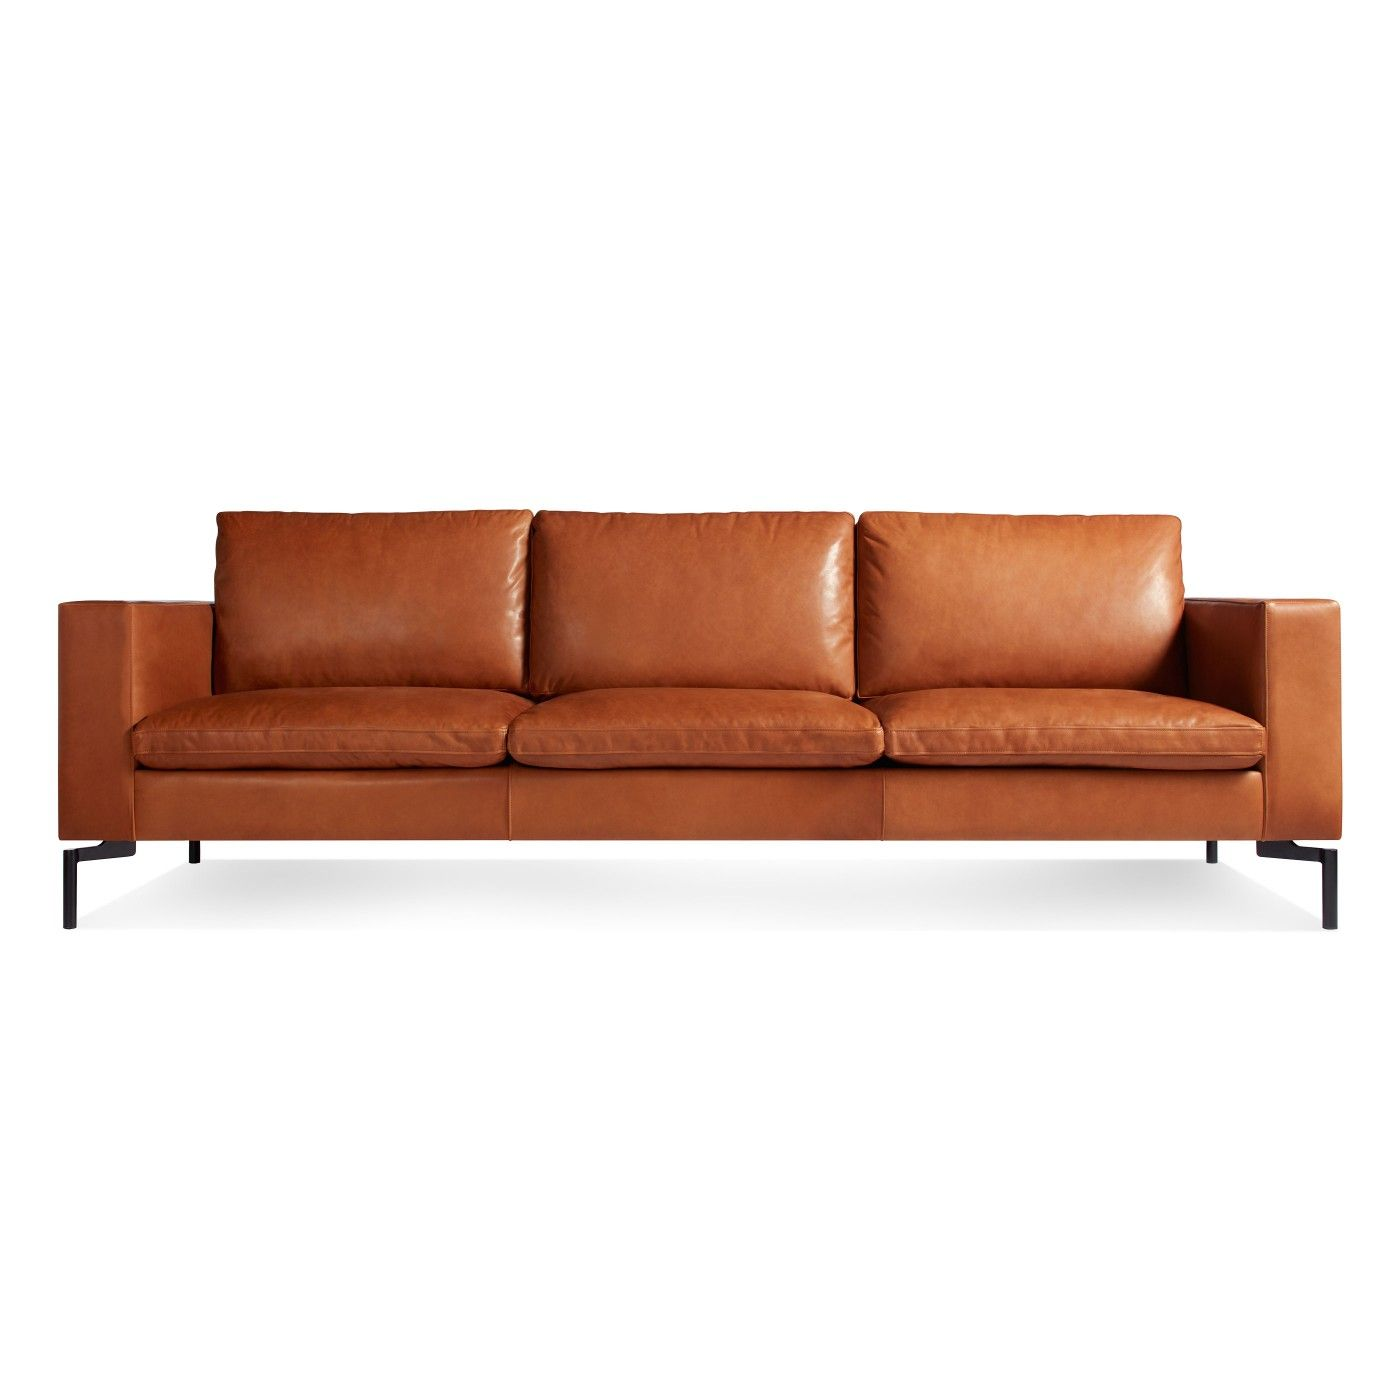 The New Standard 92 Leather Sofa